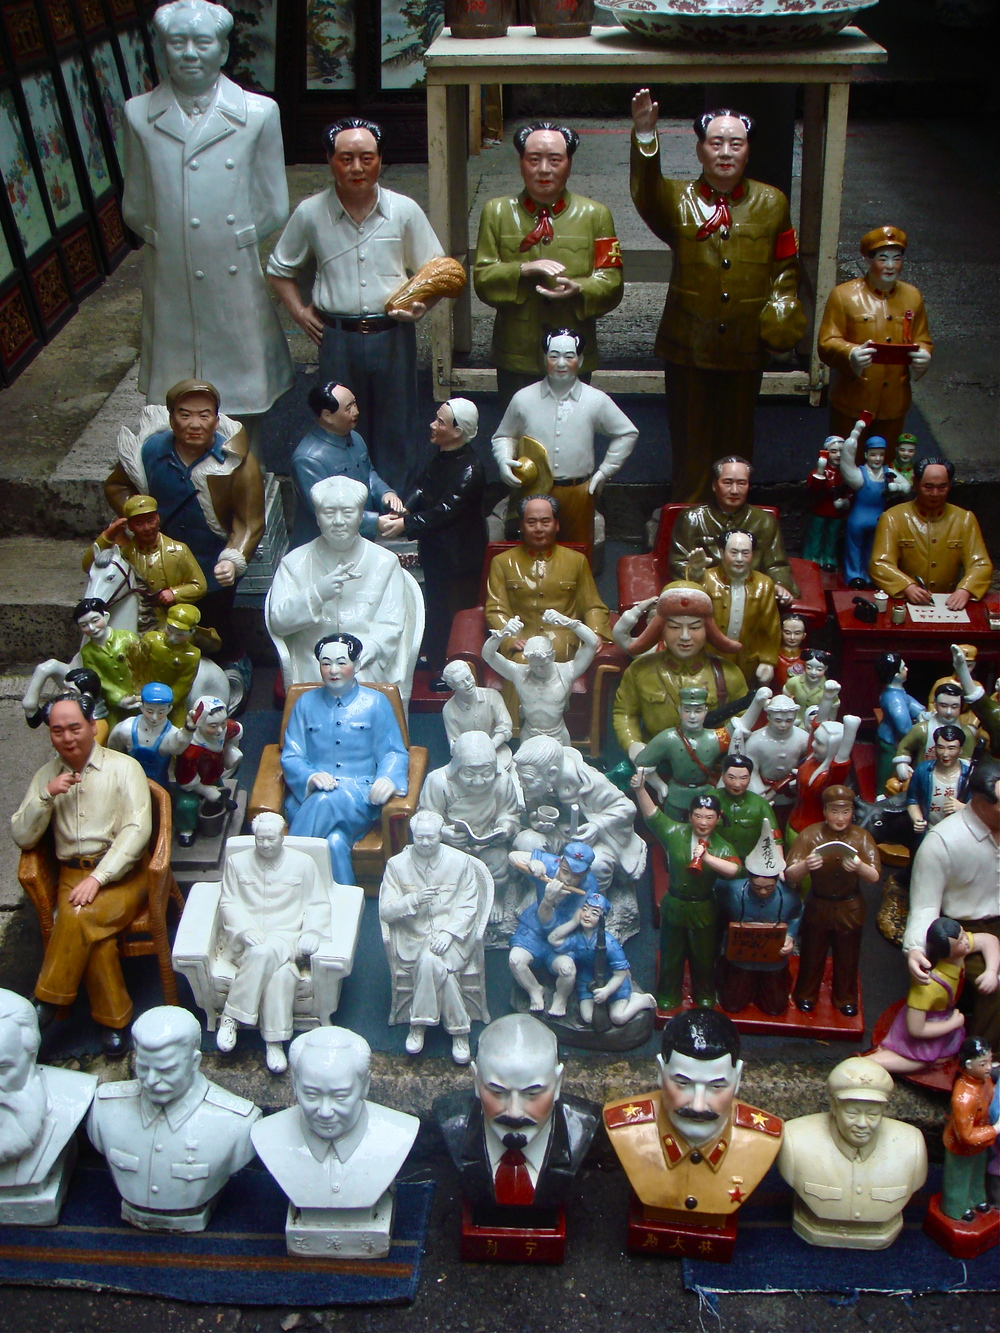 Figures of Mao at a street market in Hong Kong